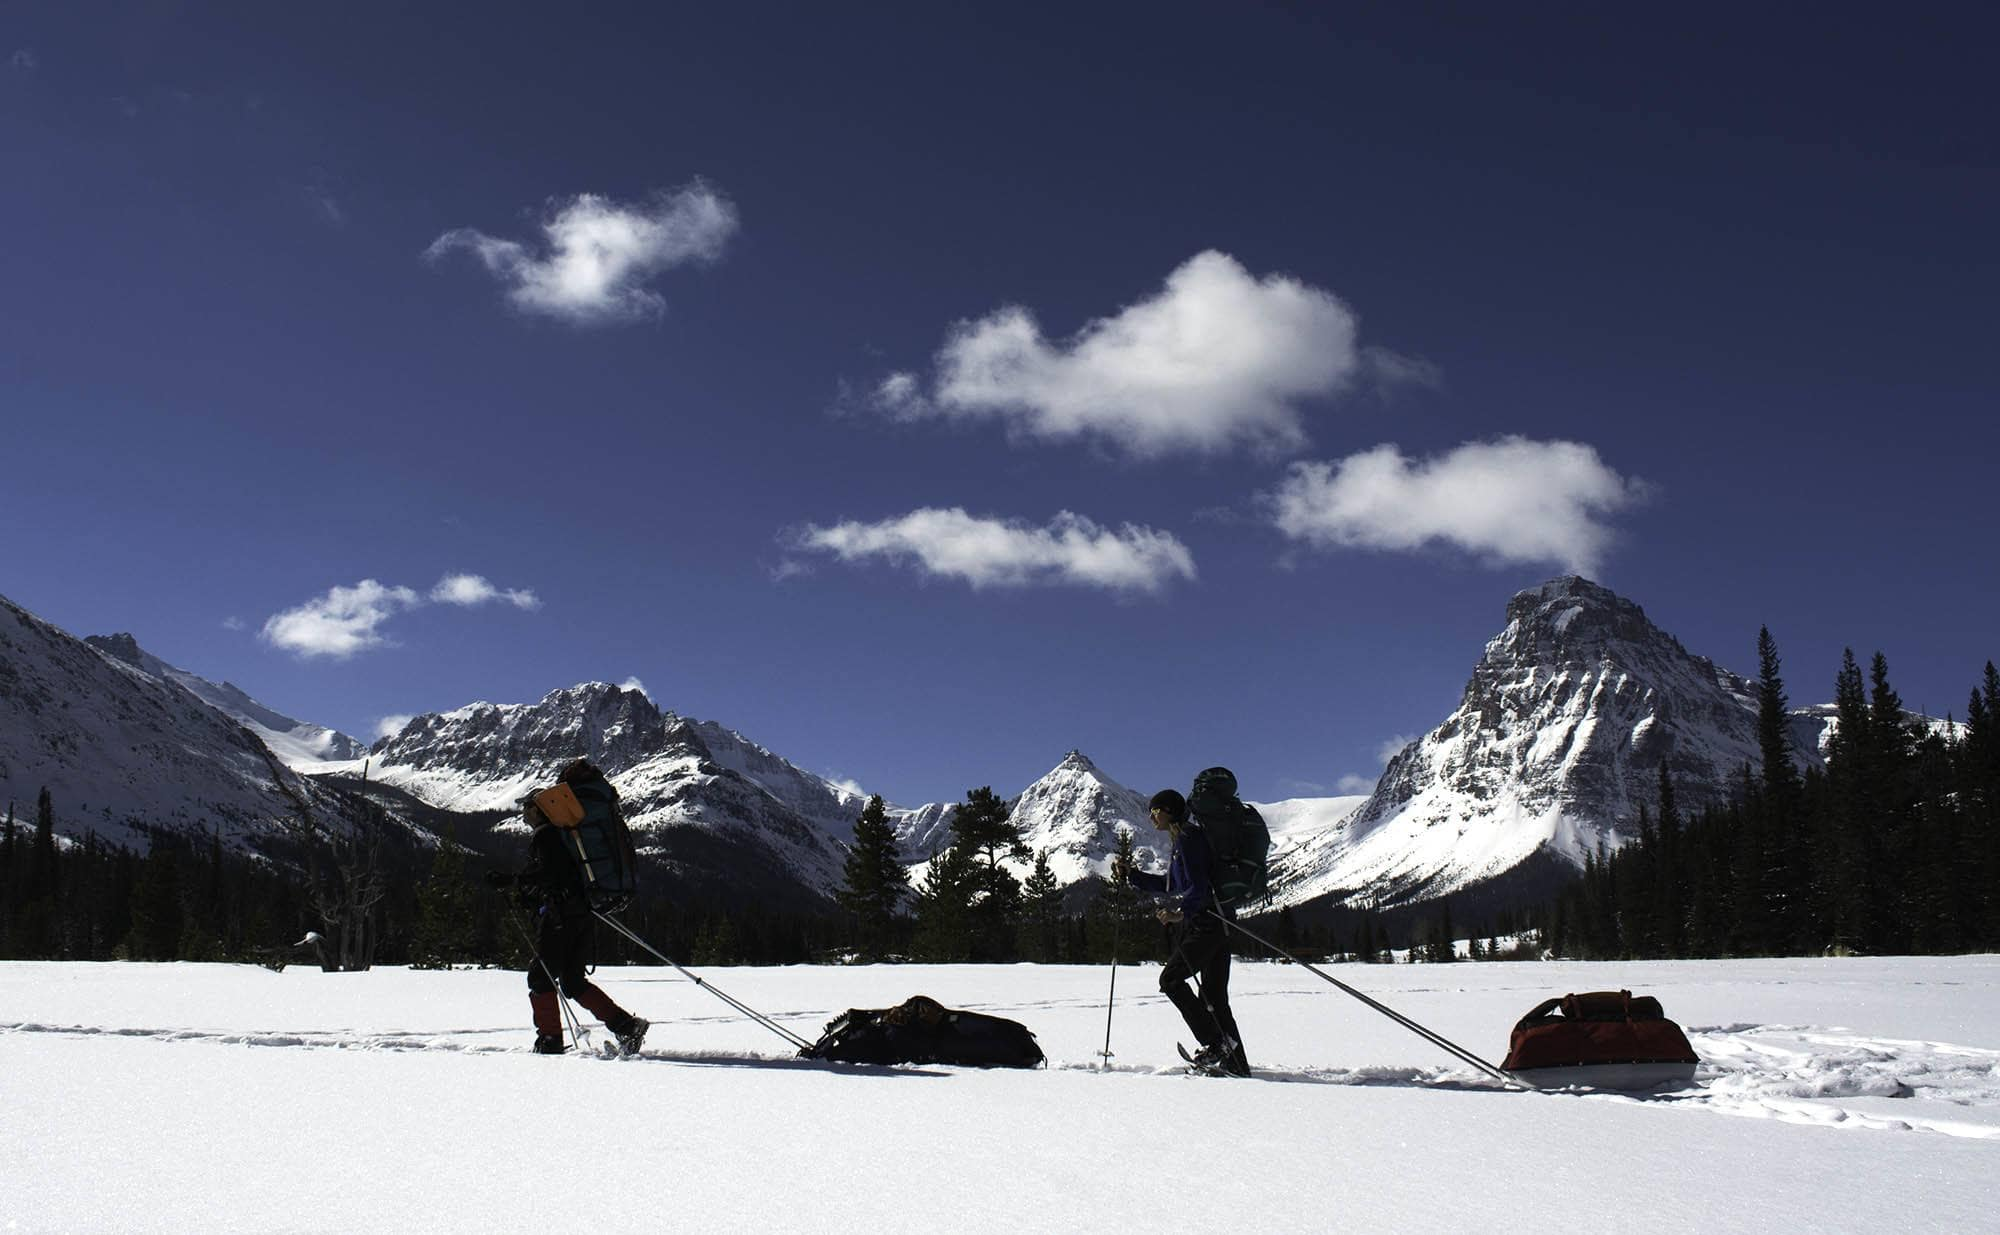 Winter camping in Glacier National Park // From hot springing to dog sledding to skijoring, get outside on your Montana vacation with these 8 adventurous winter activities.